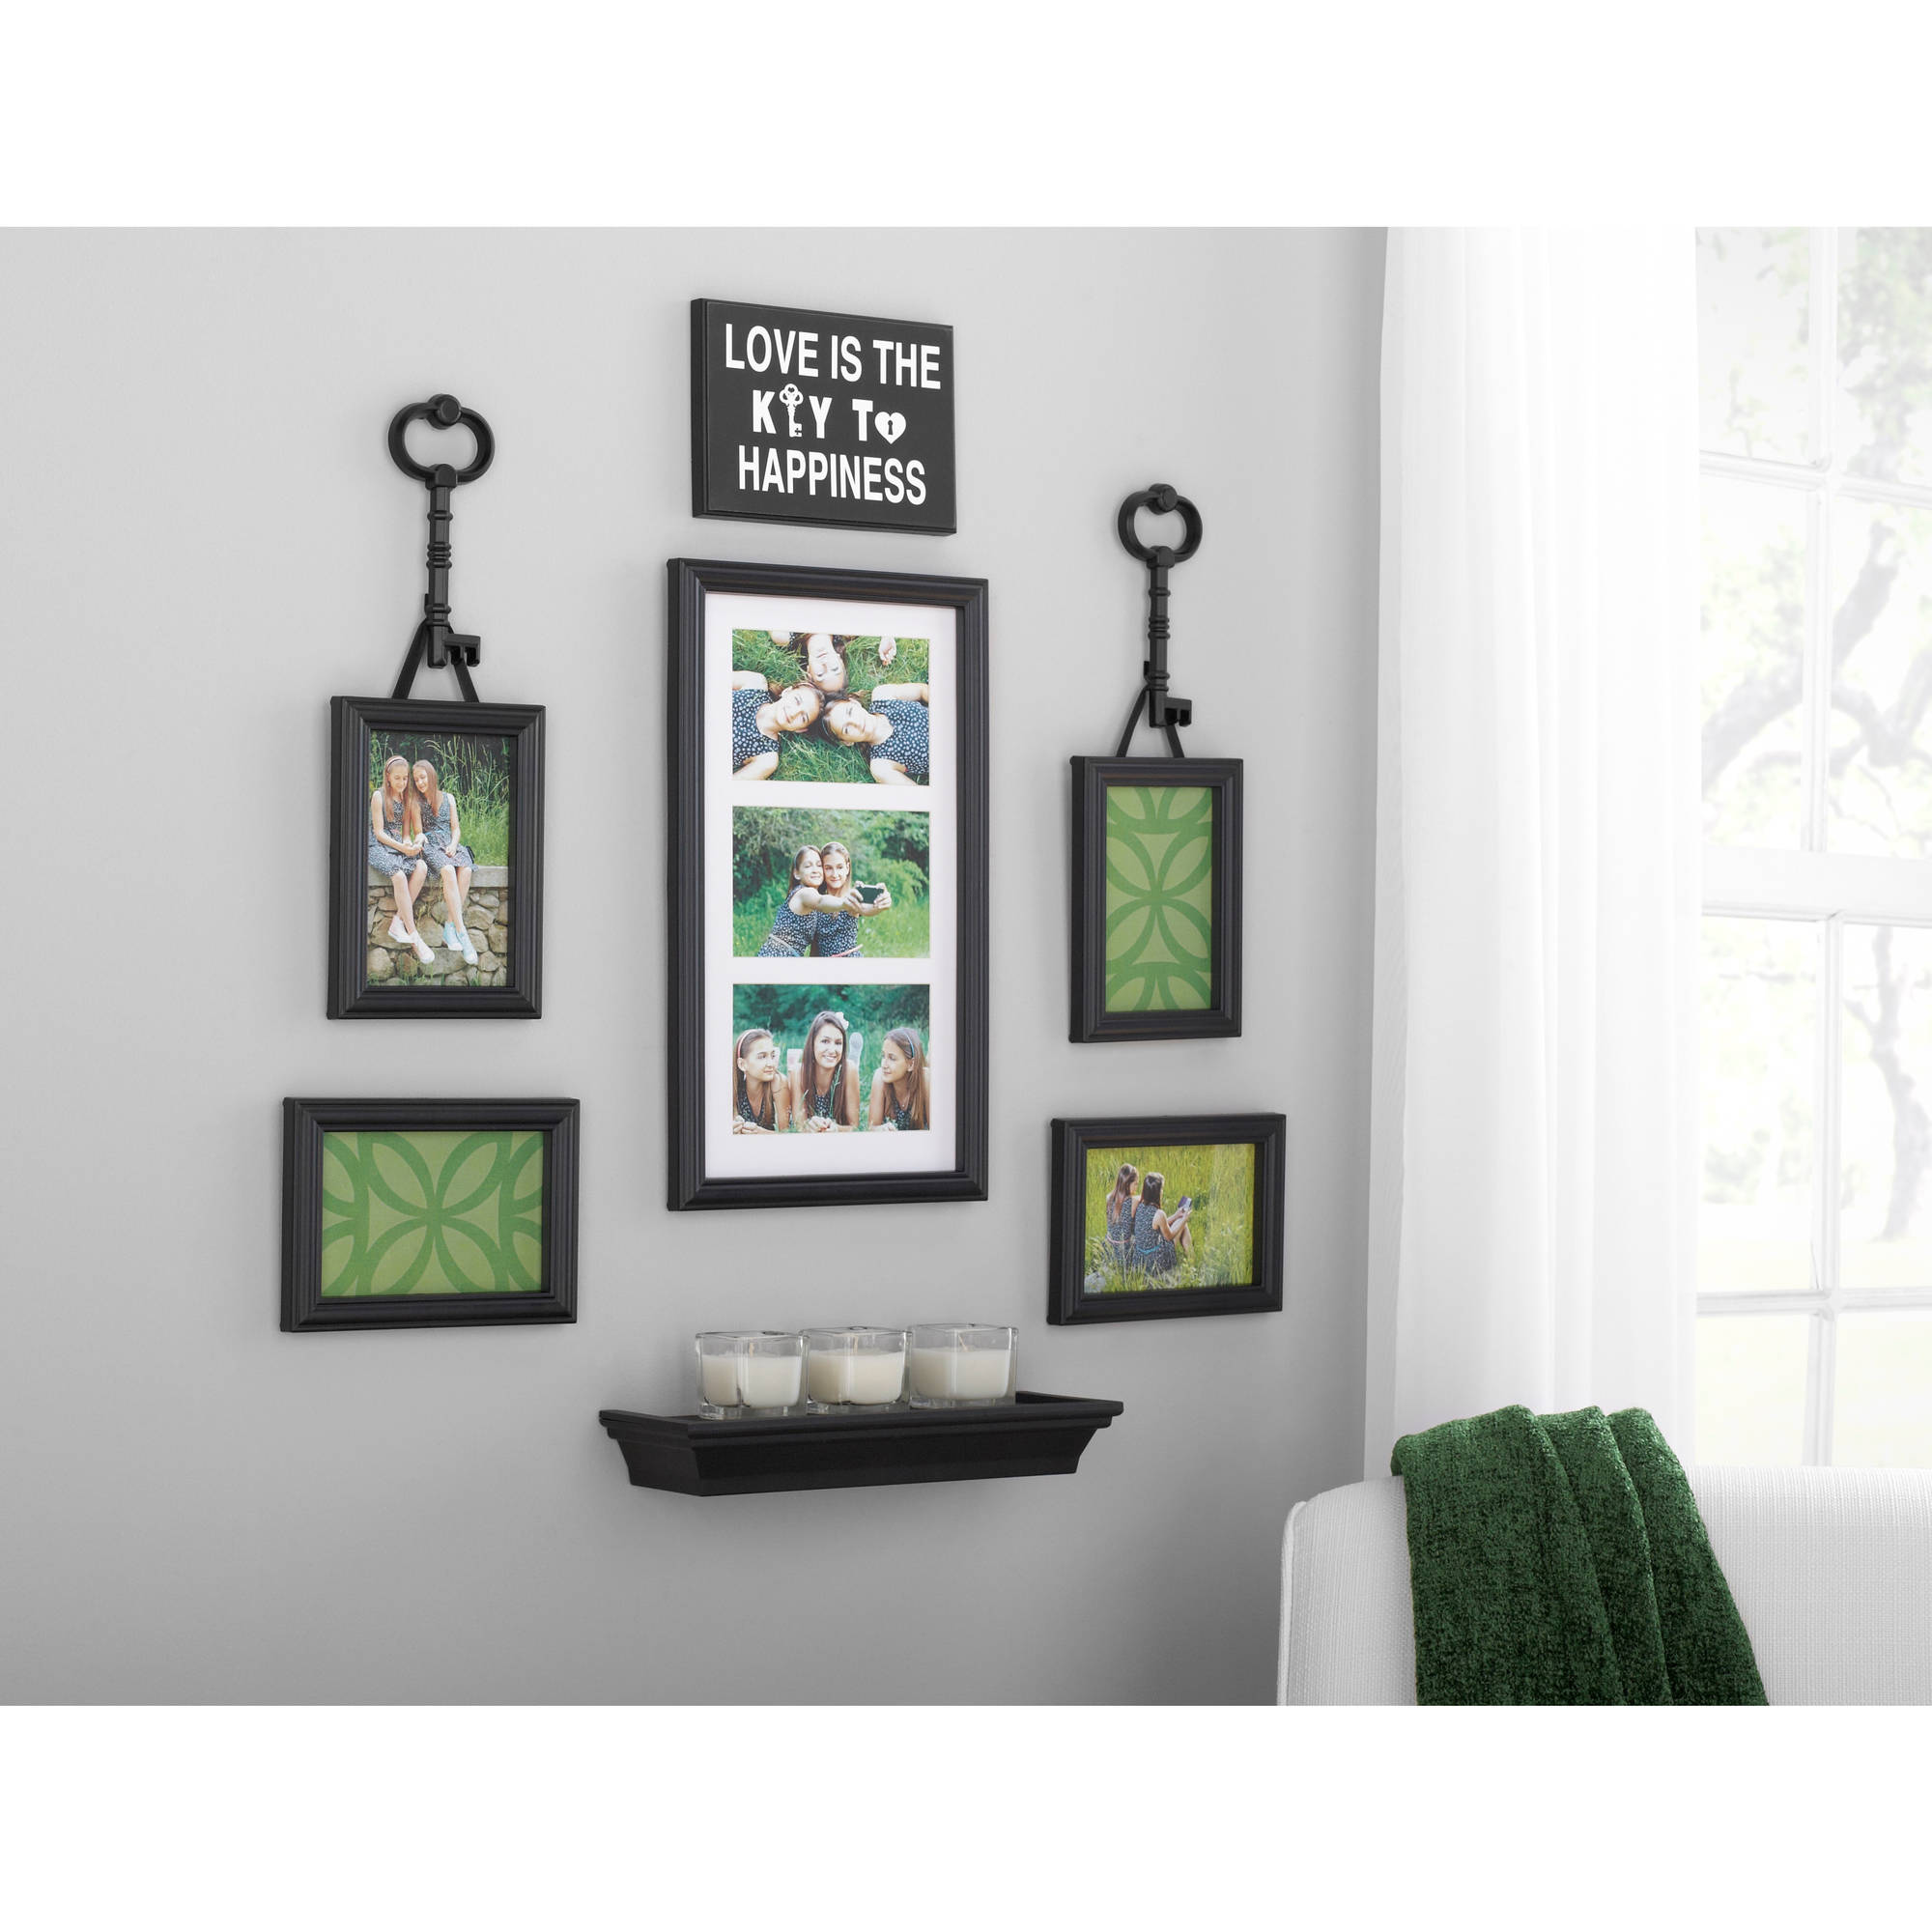 Mainstays 9 Piece Key Expression Wall Frame Set   Walmart.com